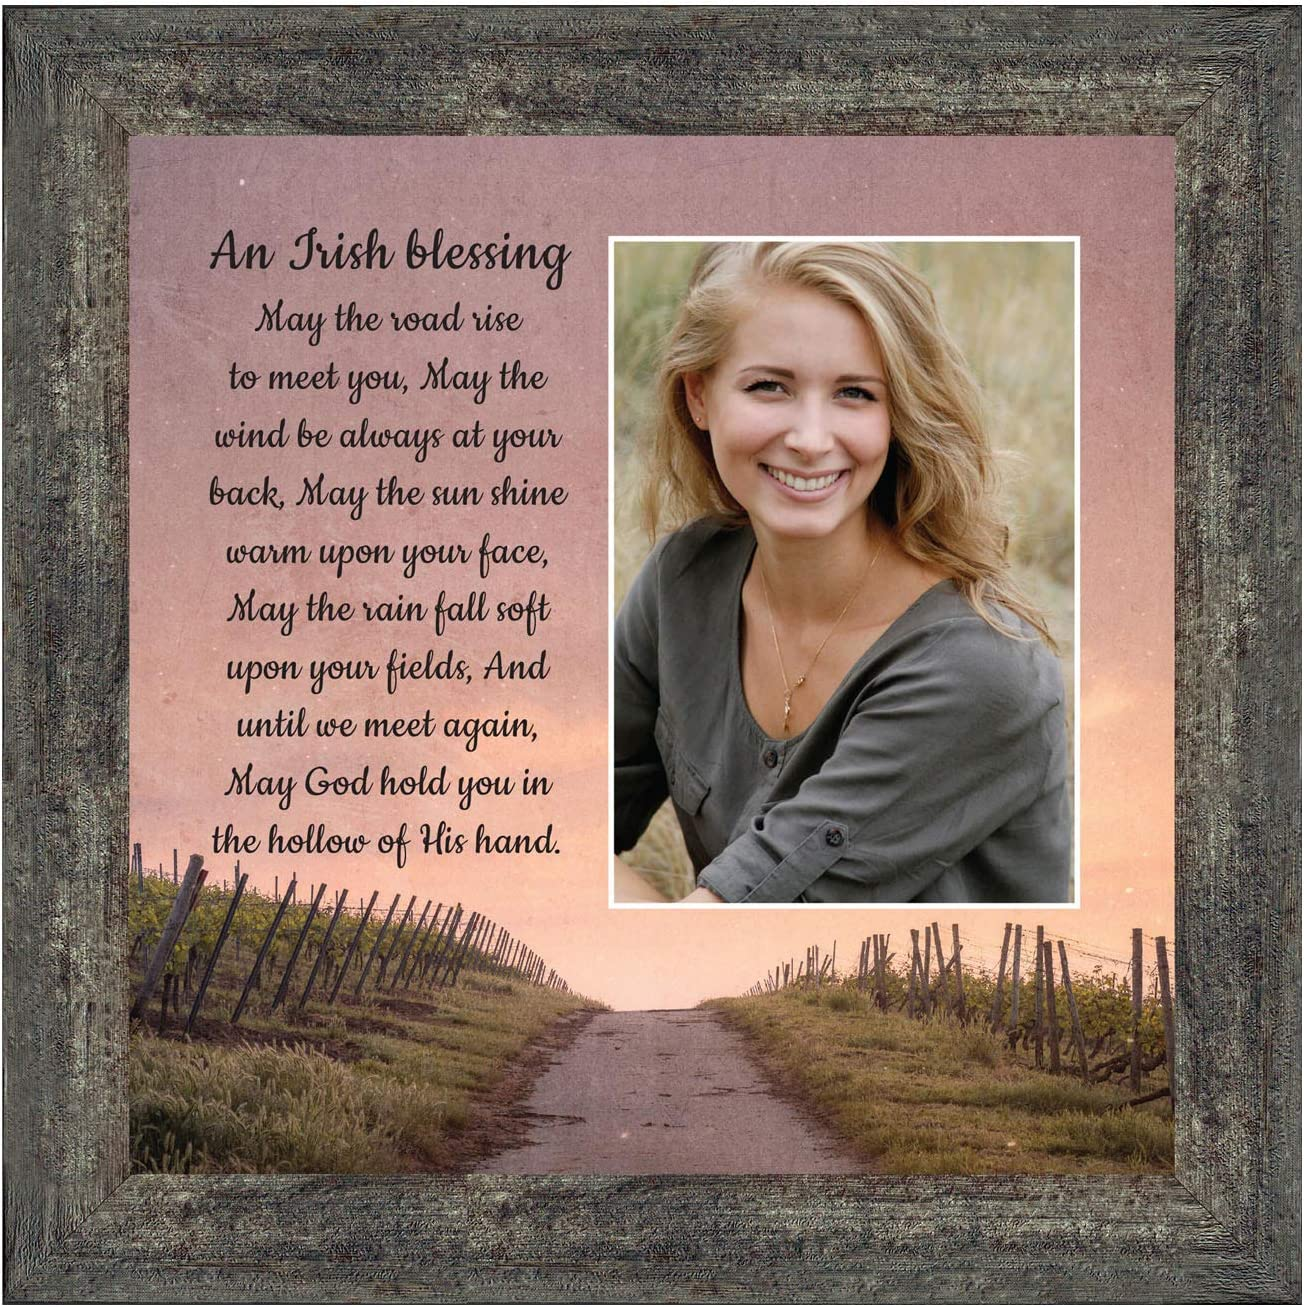 Irish Blessing Wall Decor, May The Road Rise Up to Meet You, Celtic Decor Home Blessing Sign, Irish Gifts for Women. Irish Wall Decor, House Warming Presents for New Home 6333BW